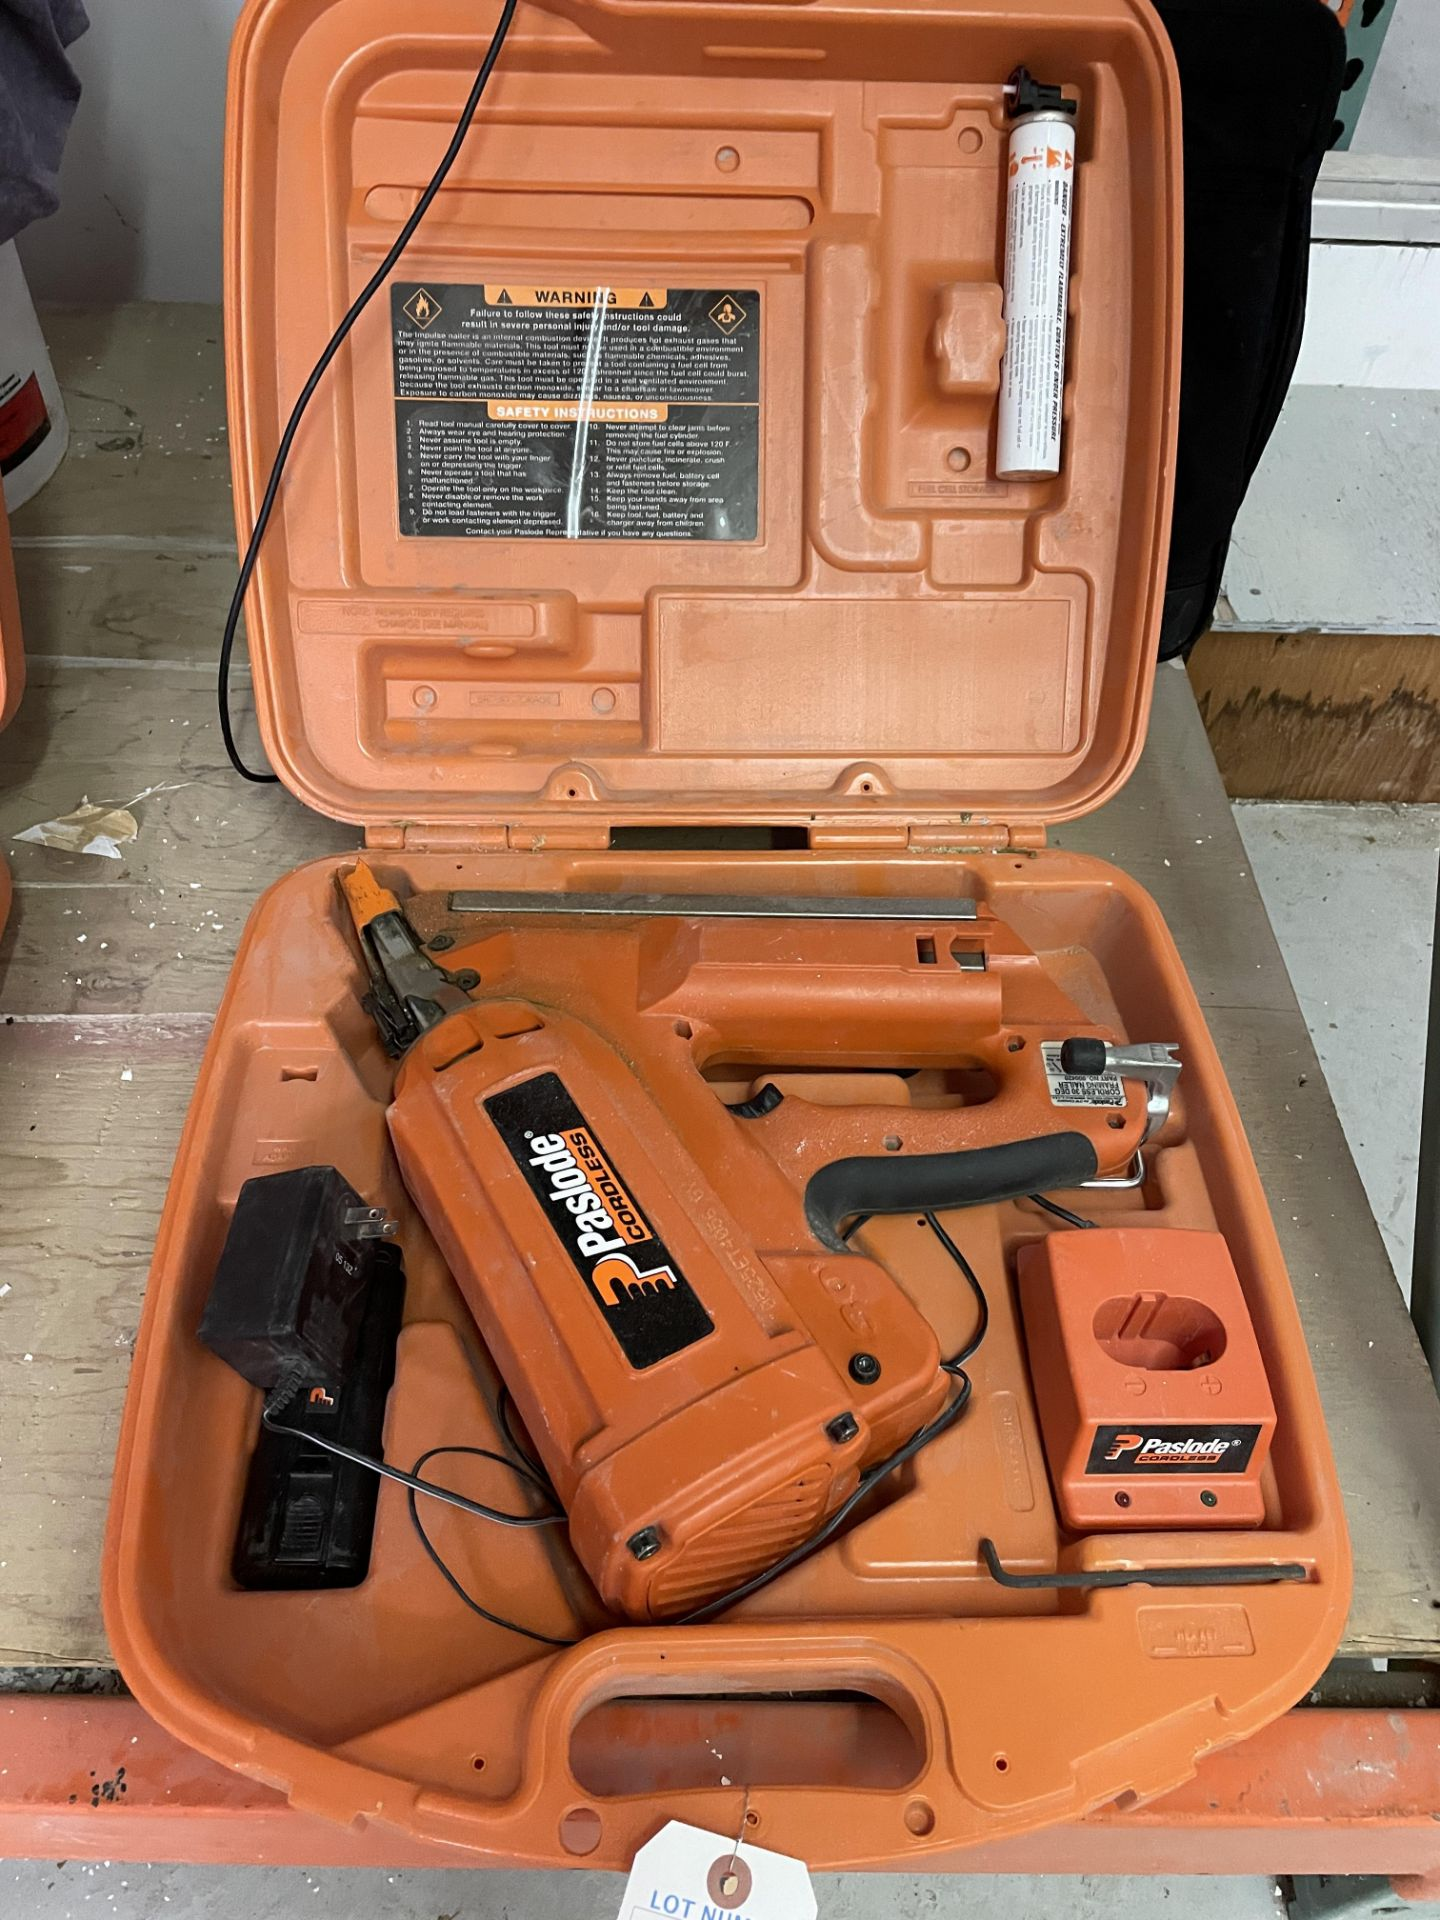 Pasload Cordless 30 degree Framing Nailer